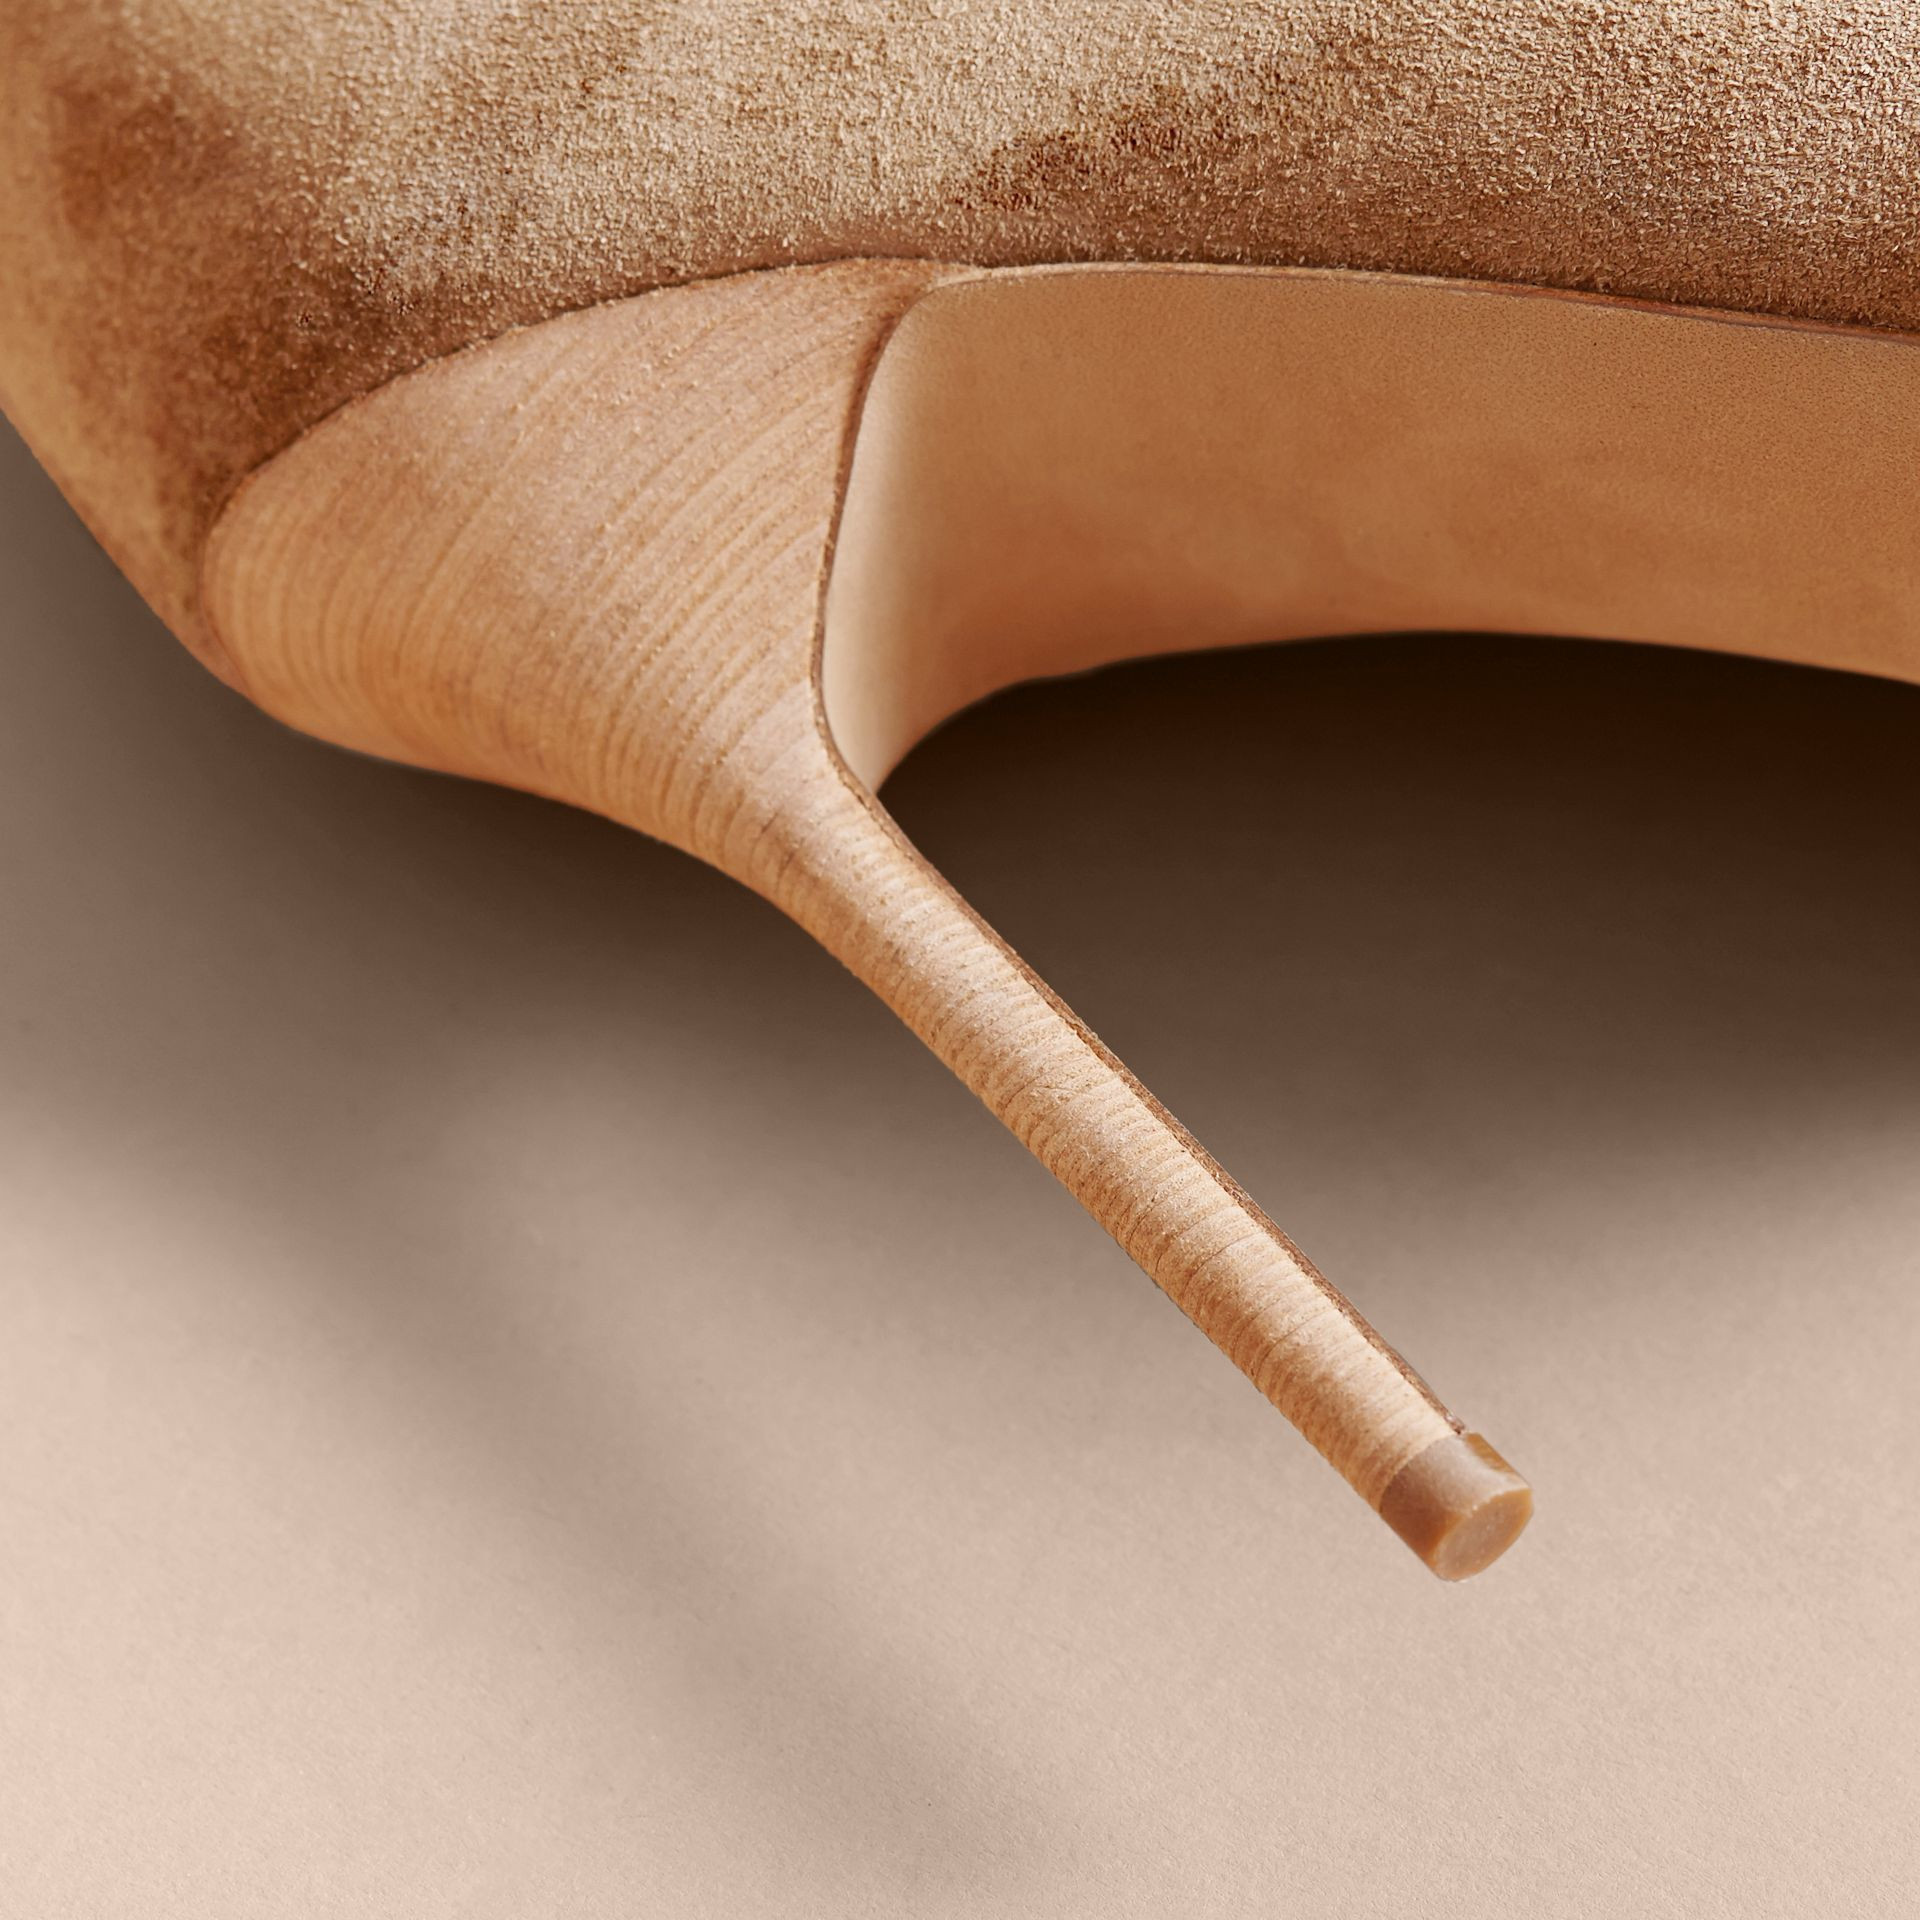 Scalloped Suede Ankle Boots in Sandstone - Women | Burberry - gallery image 5